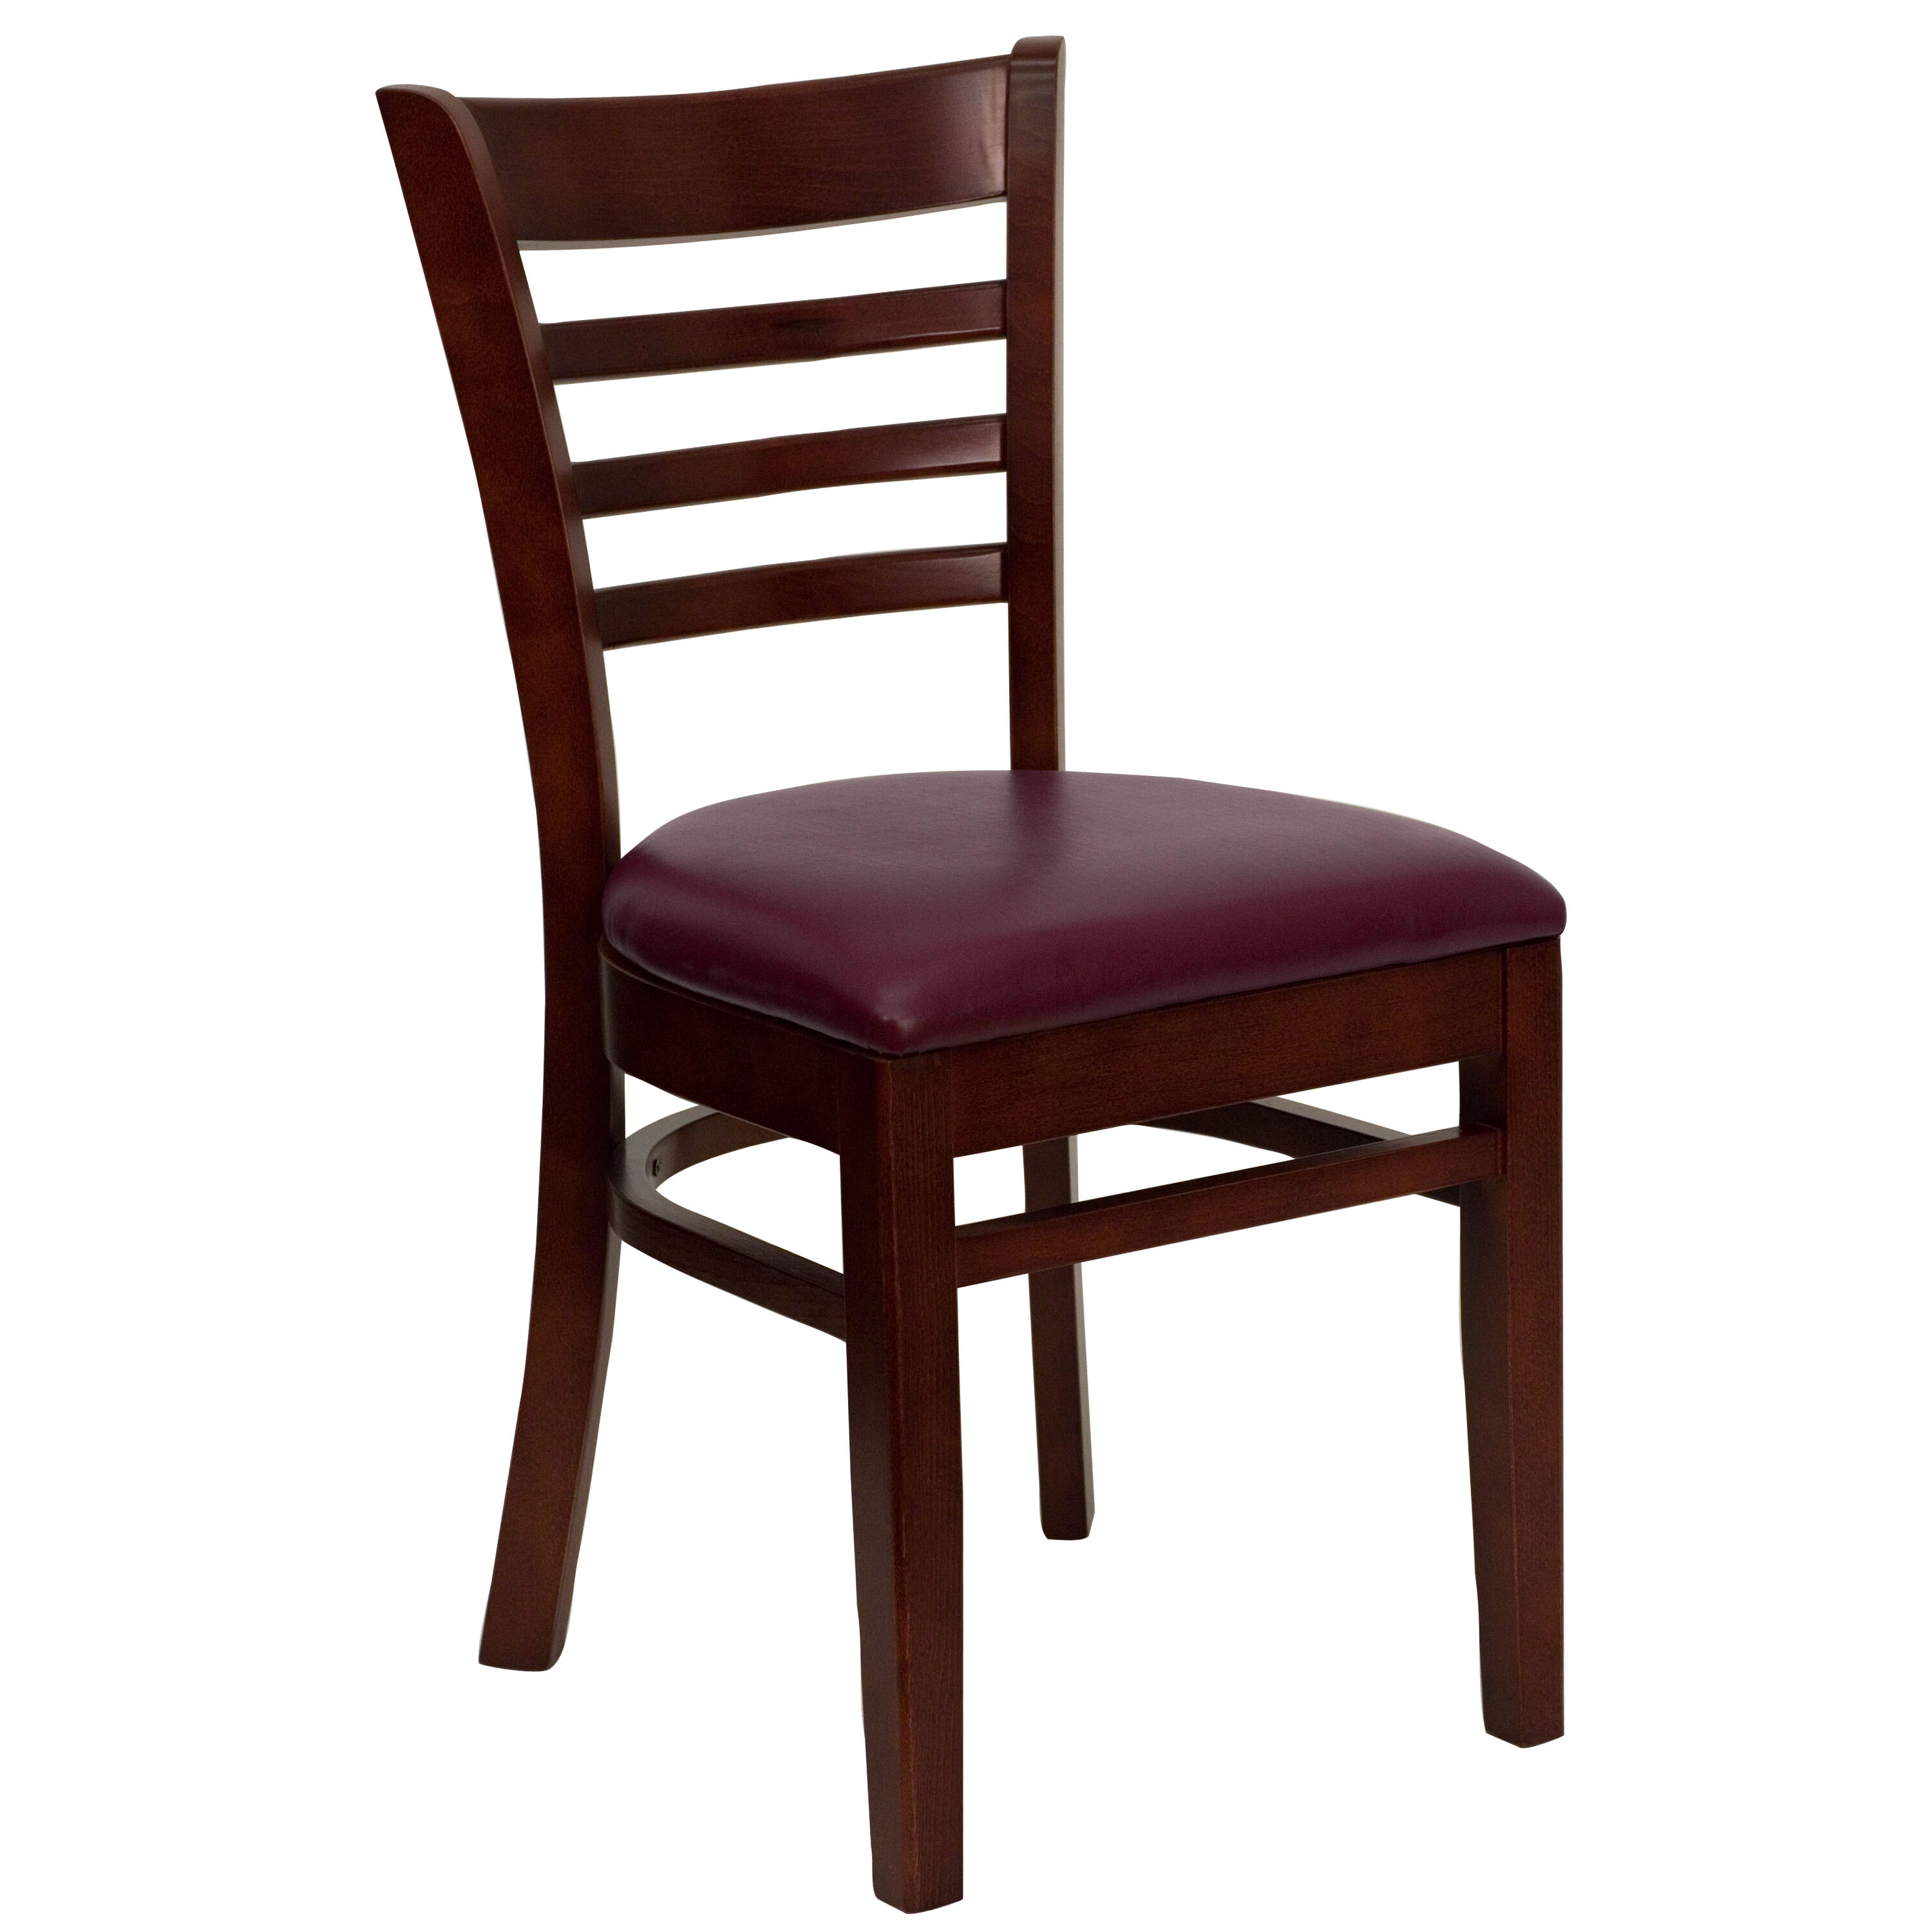 Mahogany Finished Ladder Back Wooden Restaurant Chair with Burgundy Vinyl Seat  sc 1 st  Restaurant Furniture 4 Less & RestaurantFurniture4Less: Wood Chairs